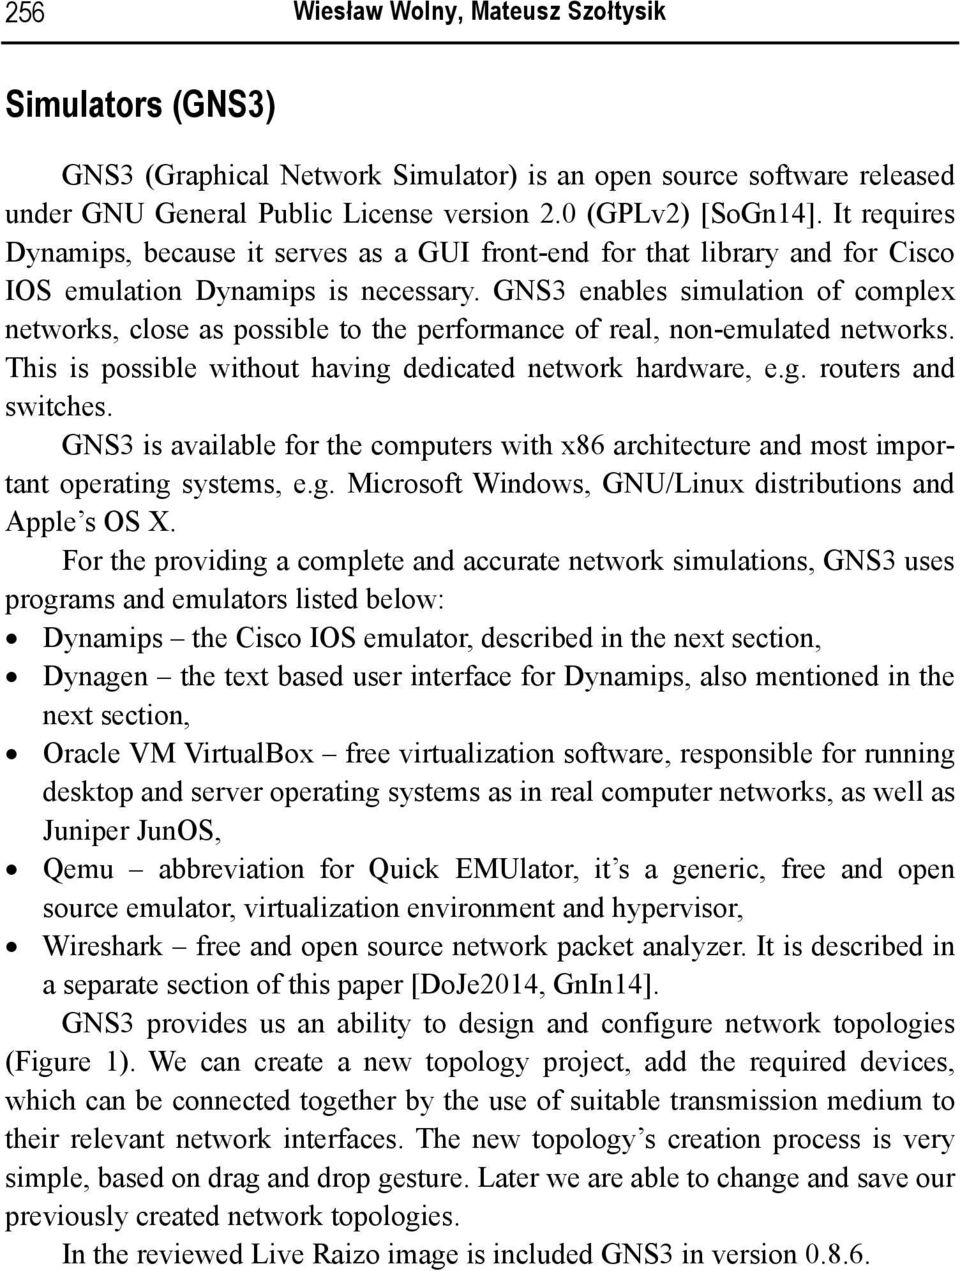 GNS3 enables simulation of complex networks, close as possible to the performance of real, non-emulated networks. This is possible without having dedicated network hardware, e.g. routers and switches.